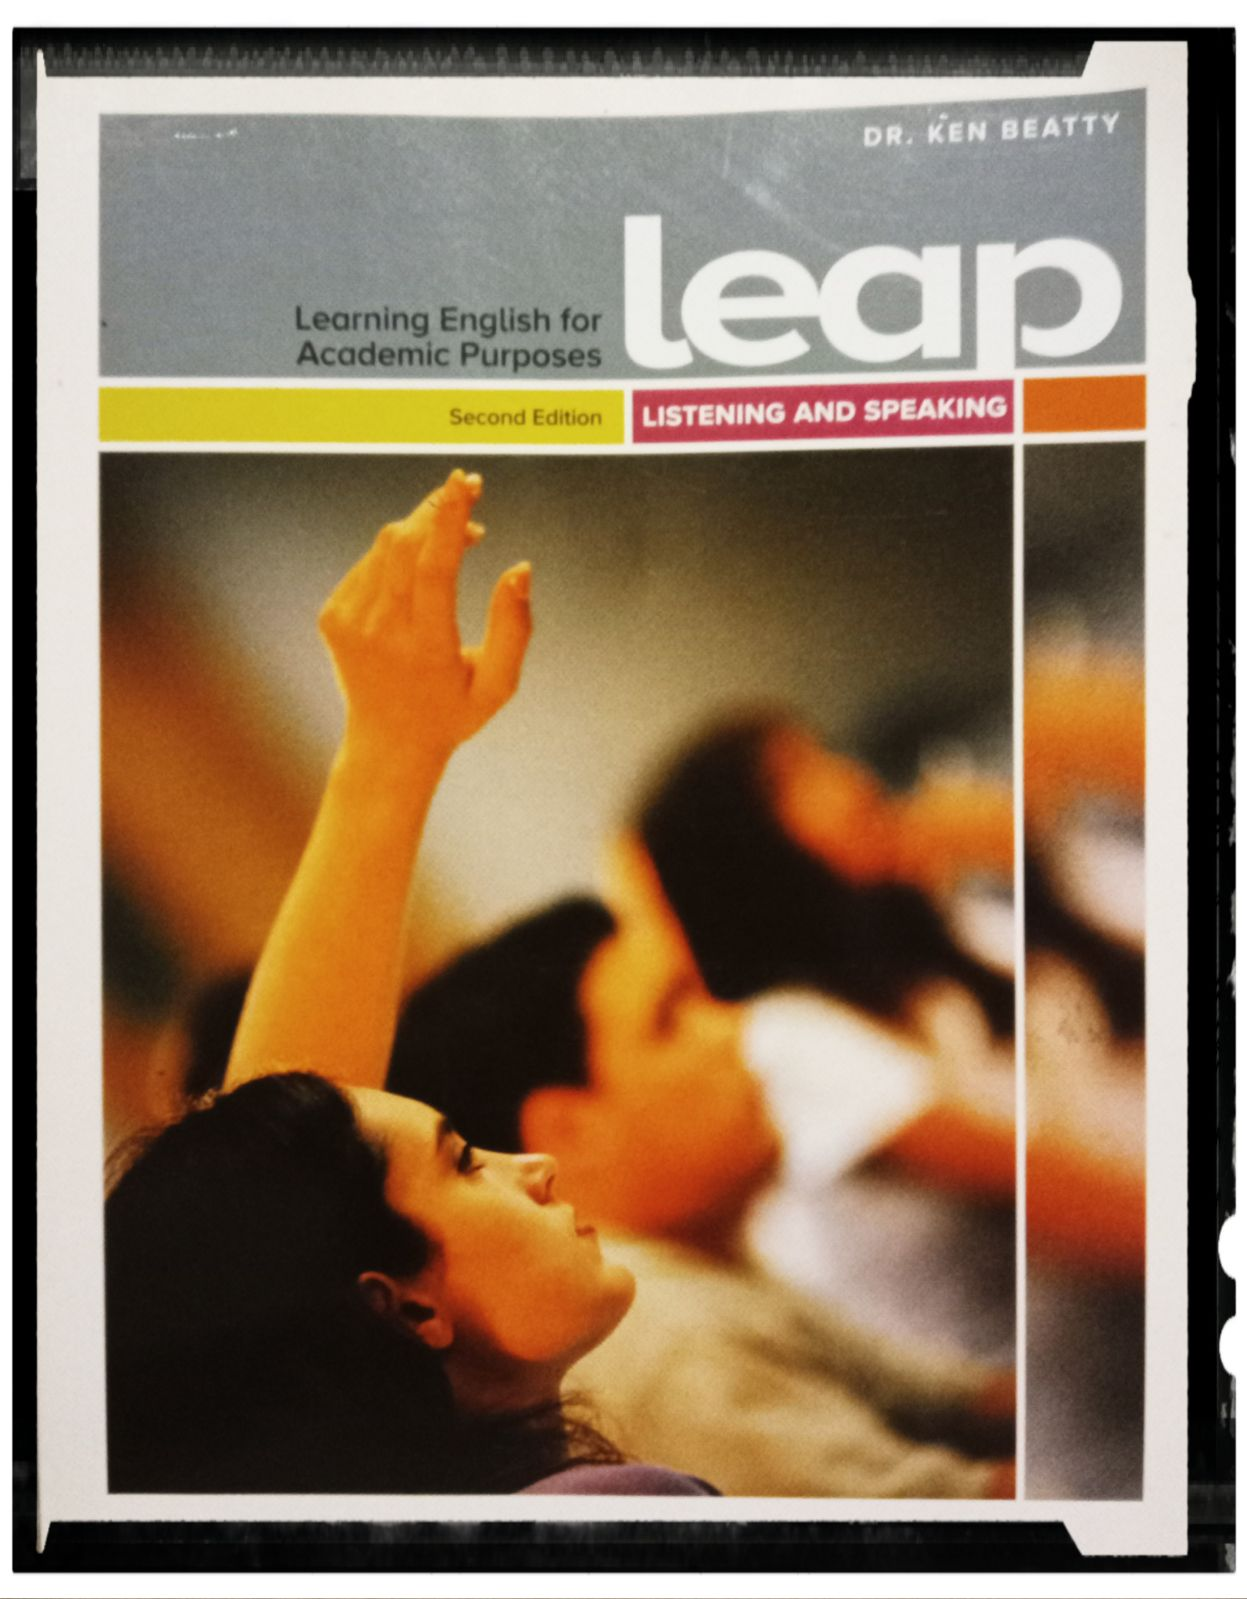 Leap listening and speaking